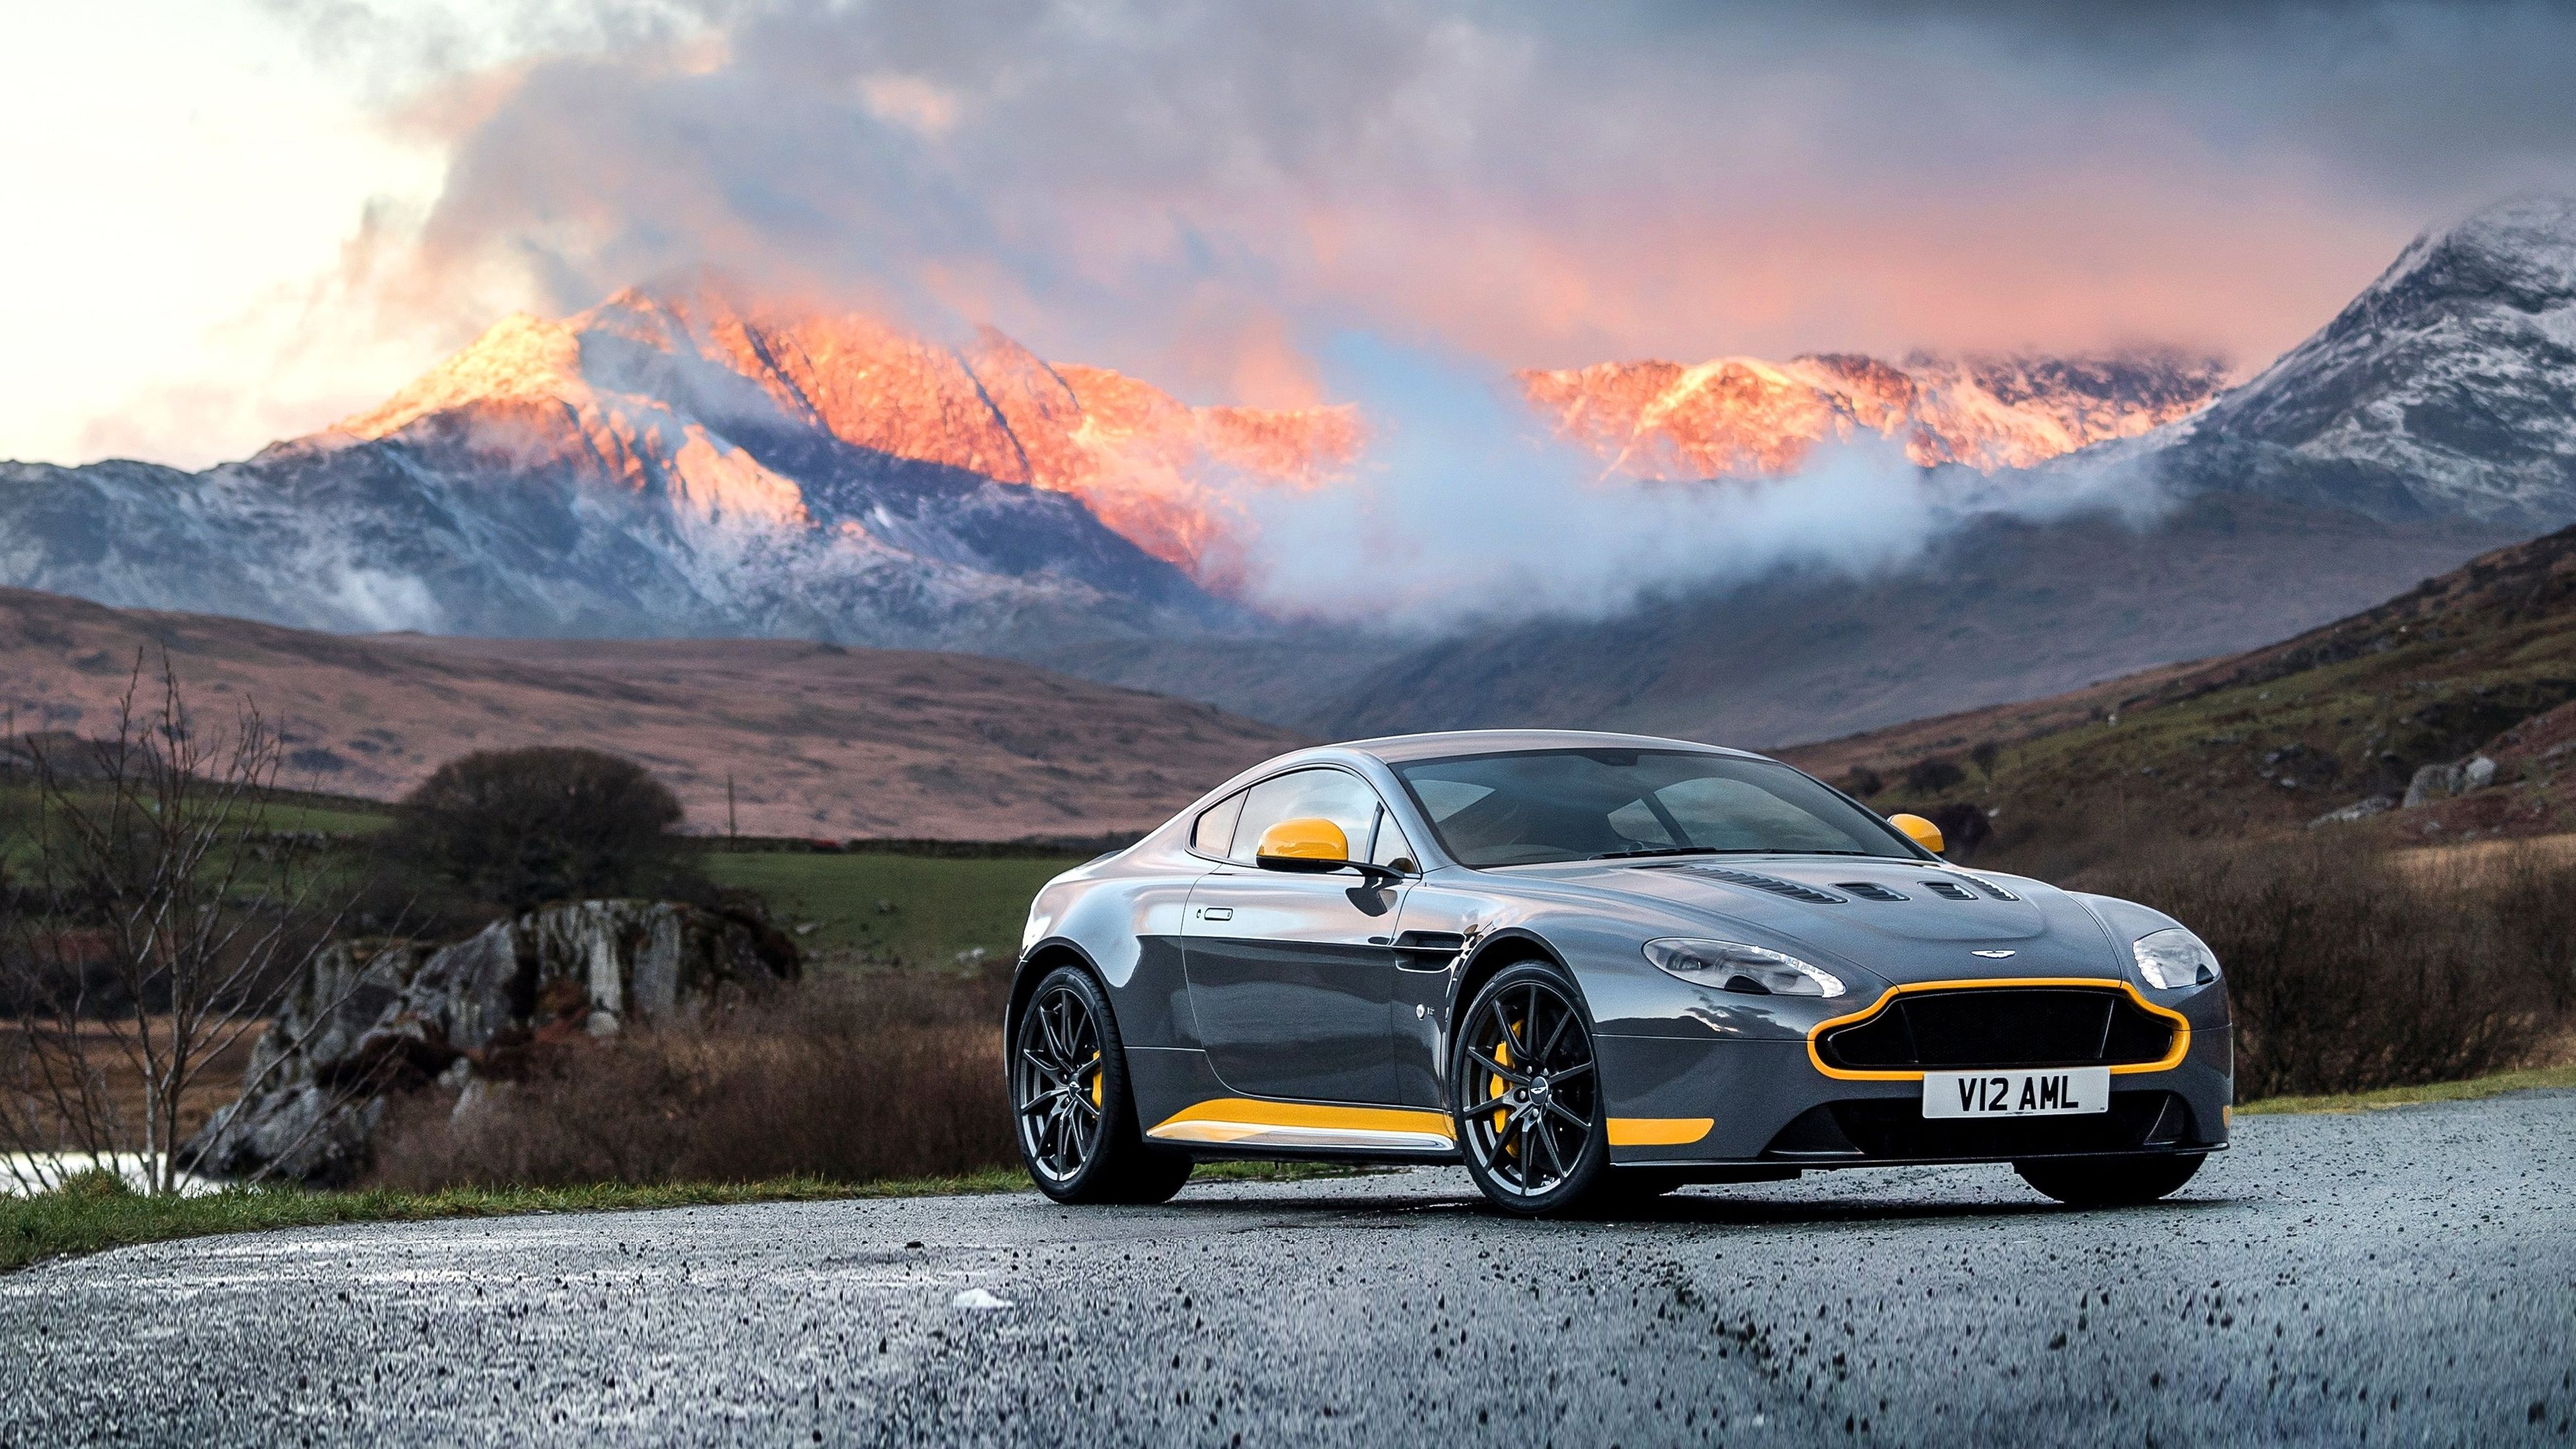 Wallpaper 4K 2017 Aston Martin Vantage GT8 – wallpaperzone.co/…